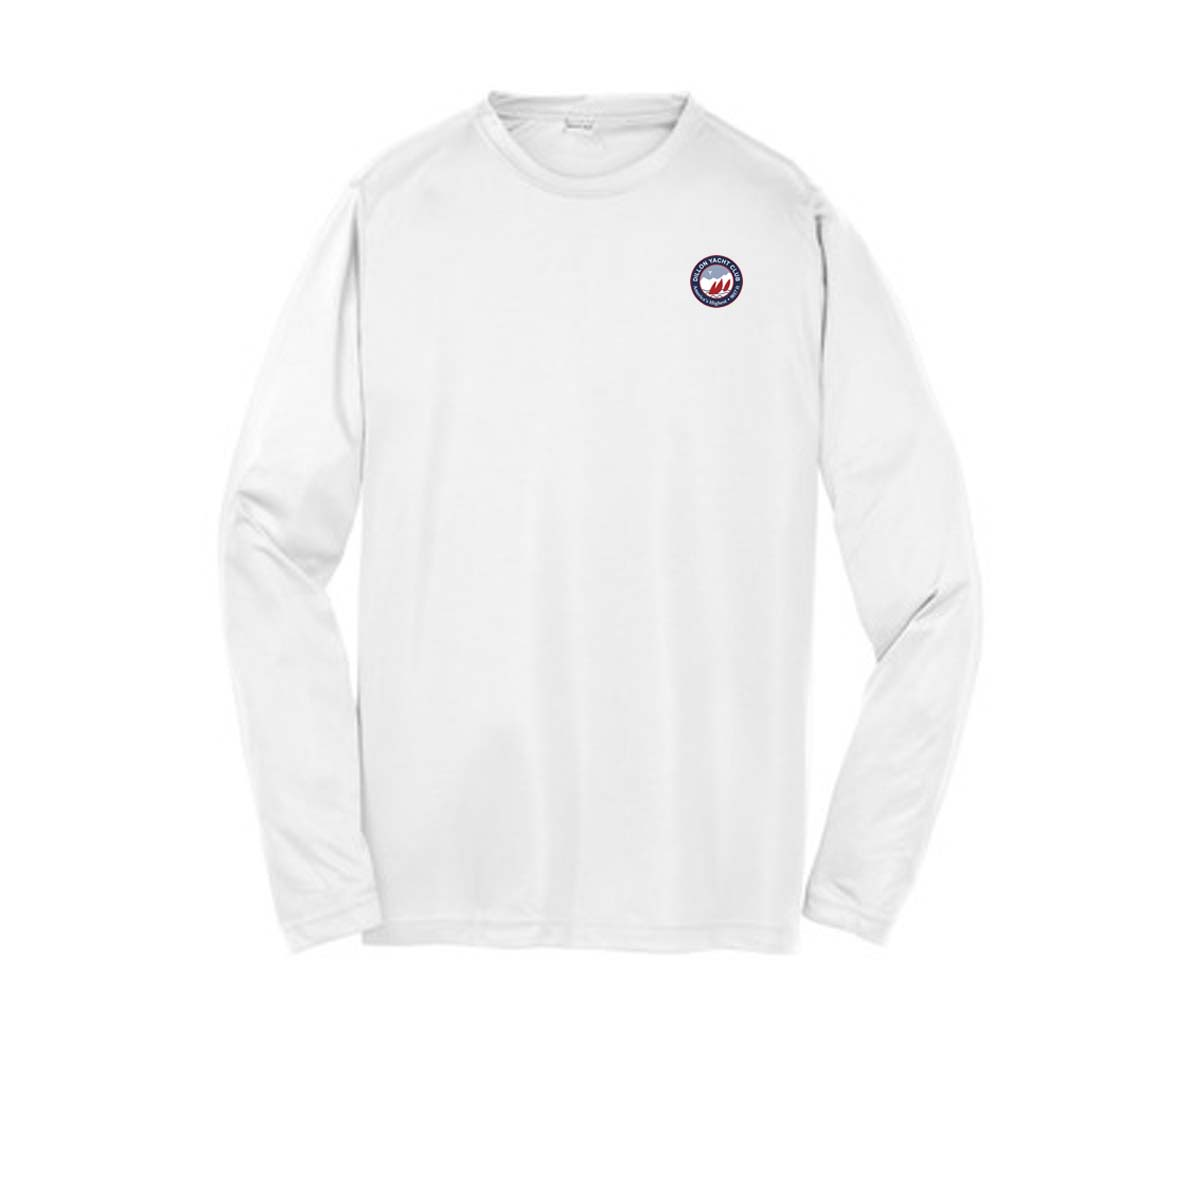 Dillon Yacht Club - Kid's L/S TECH TEE